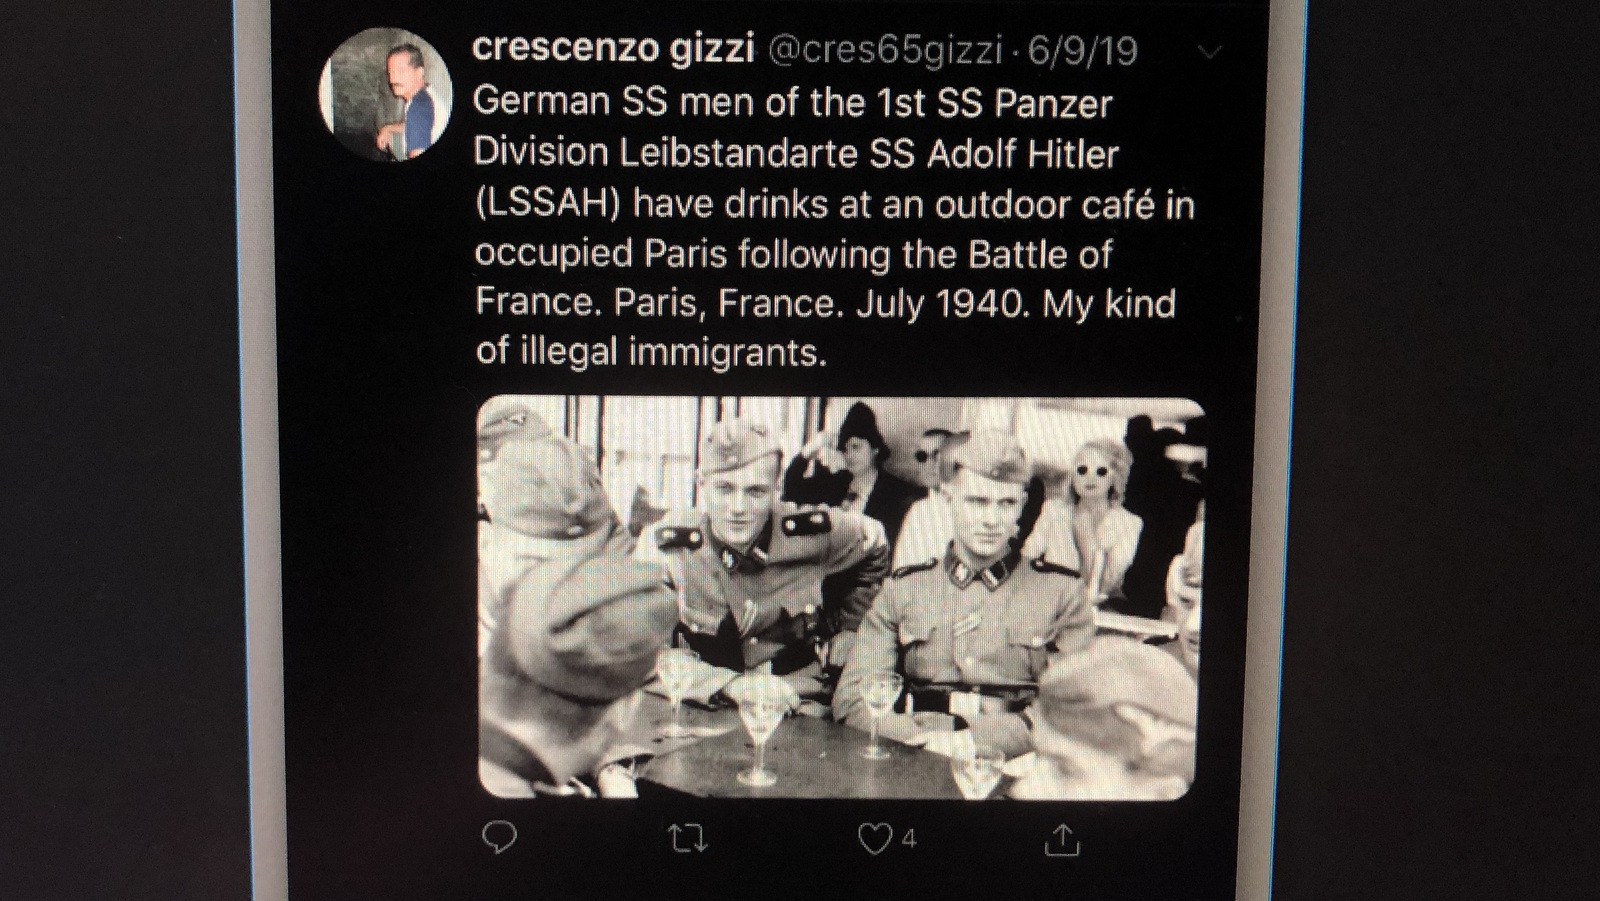 Posted on June 9 on @cres65gizzi.